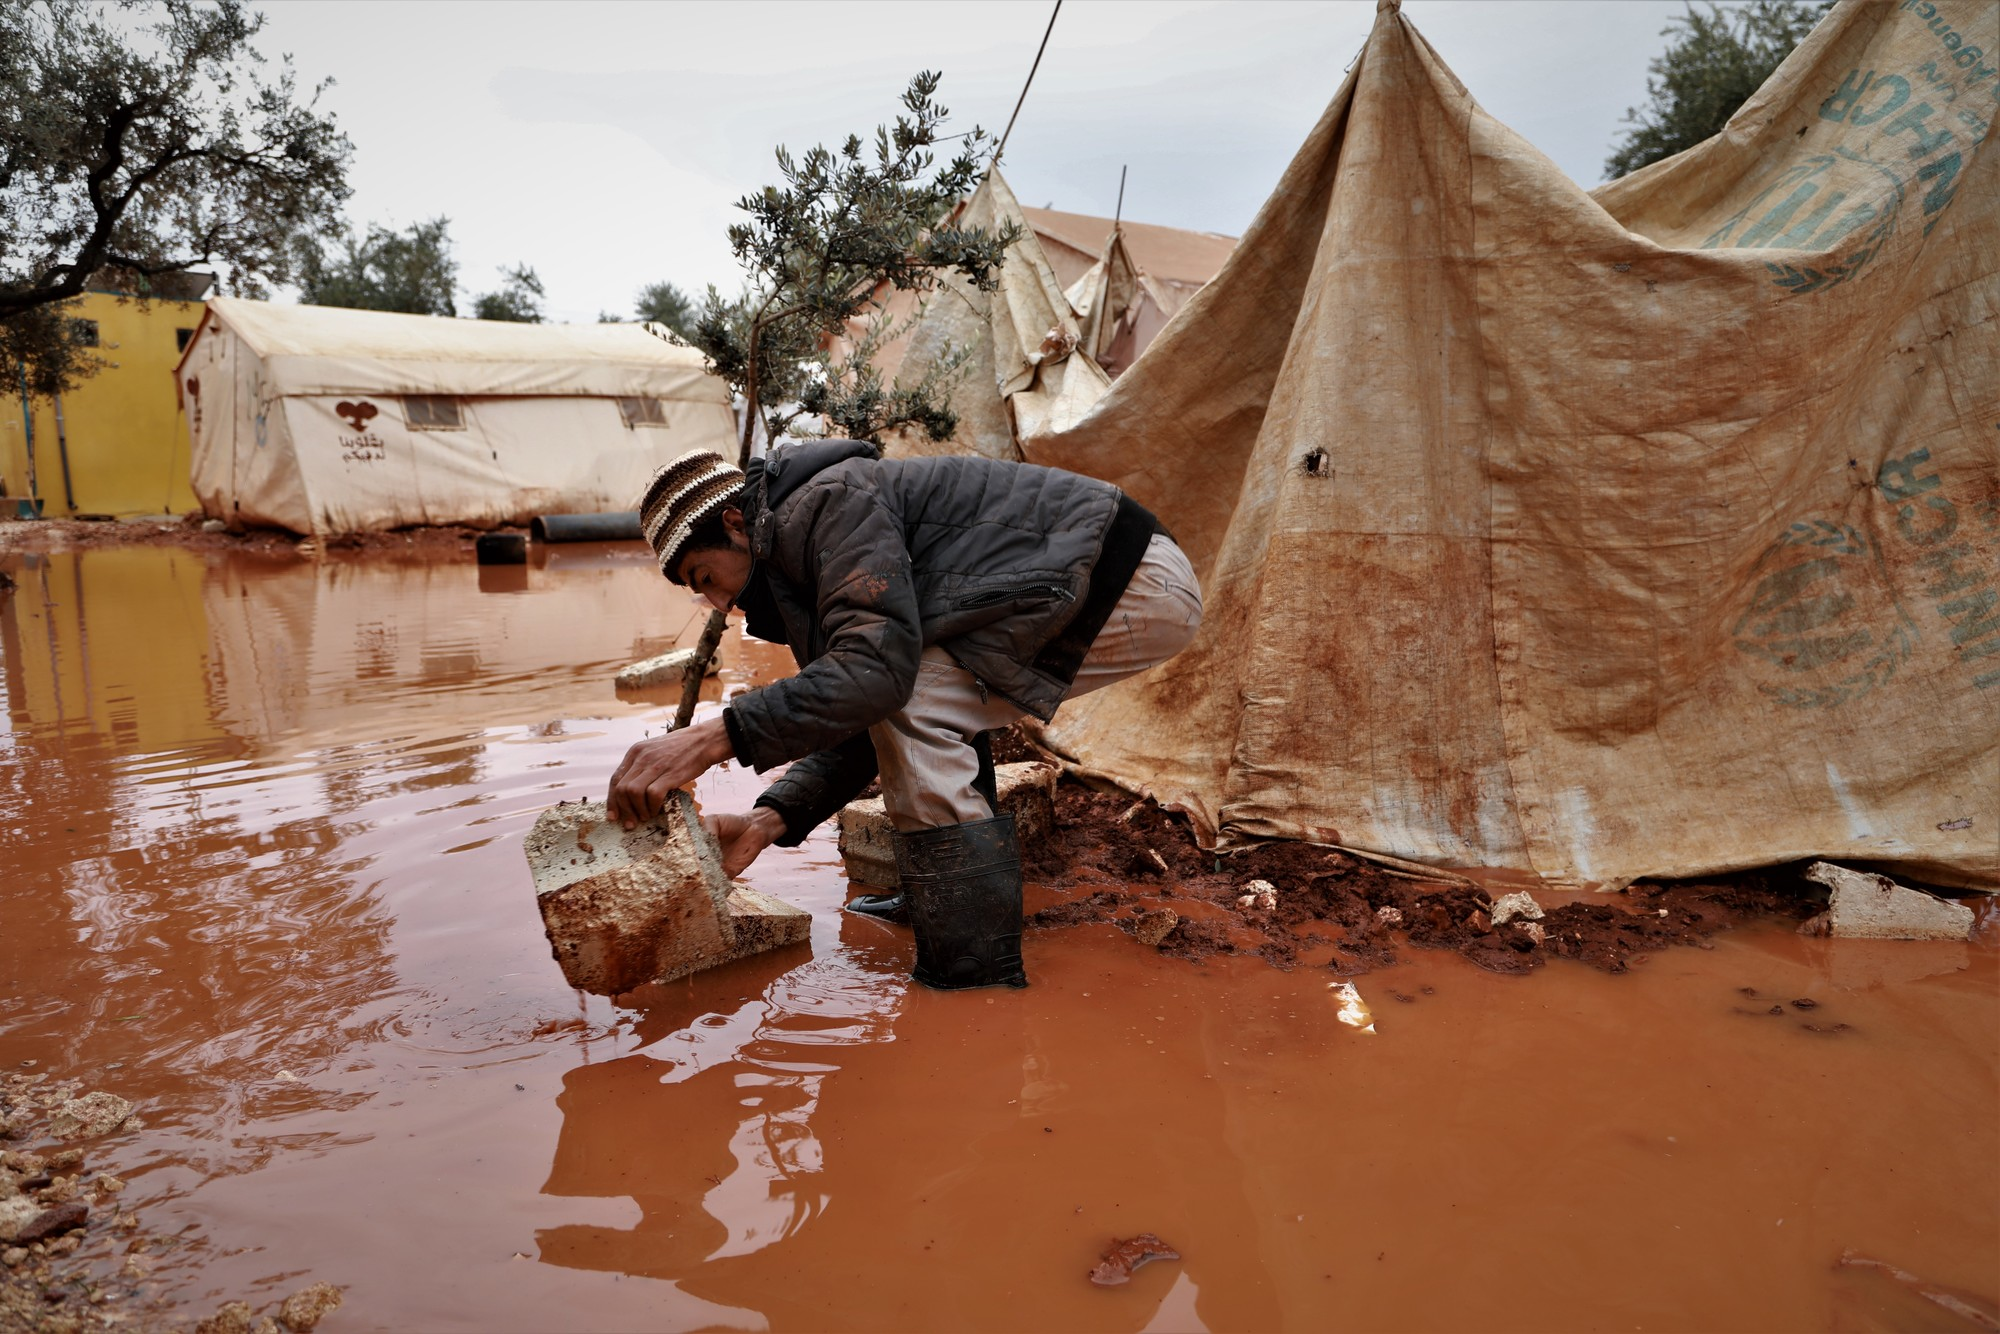 A man bends down outside of a flooded tent in a camp.